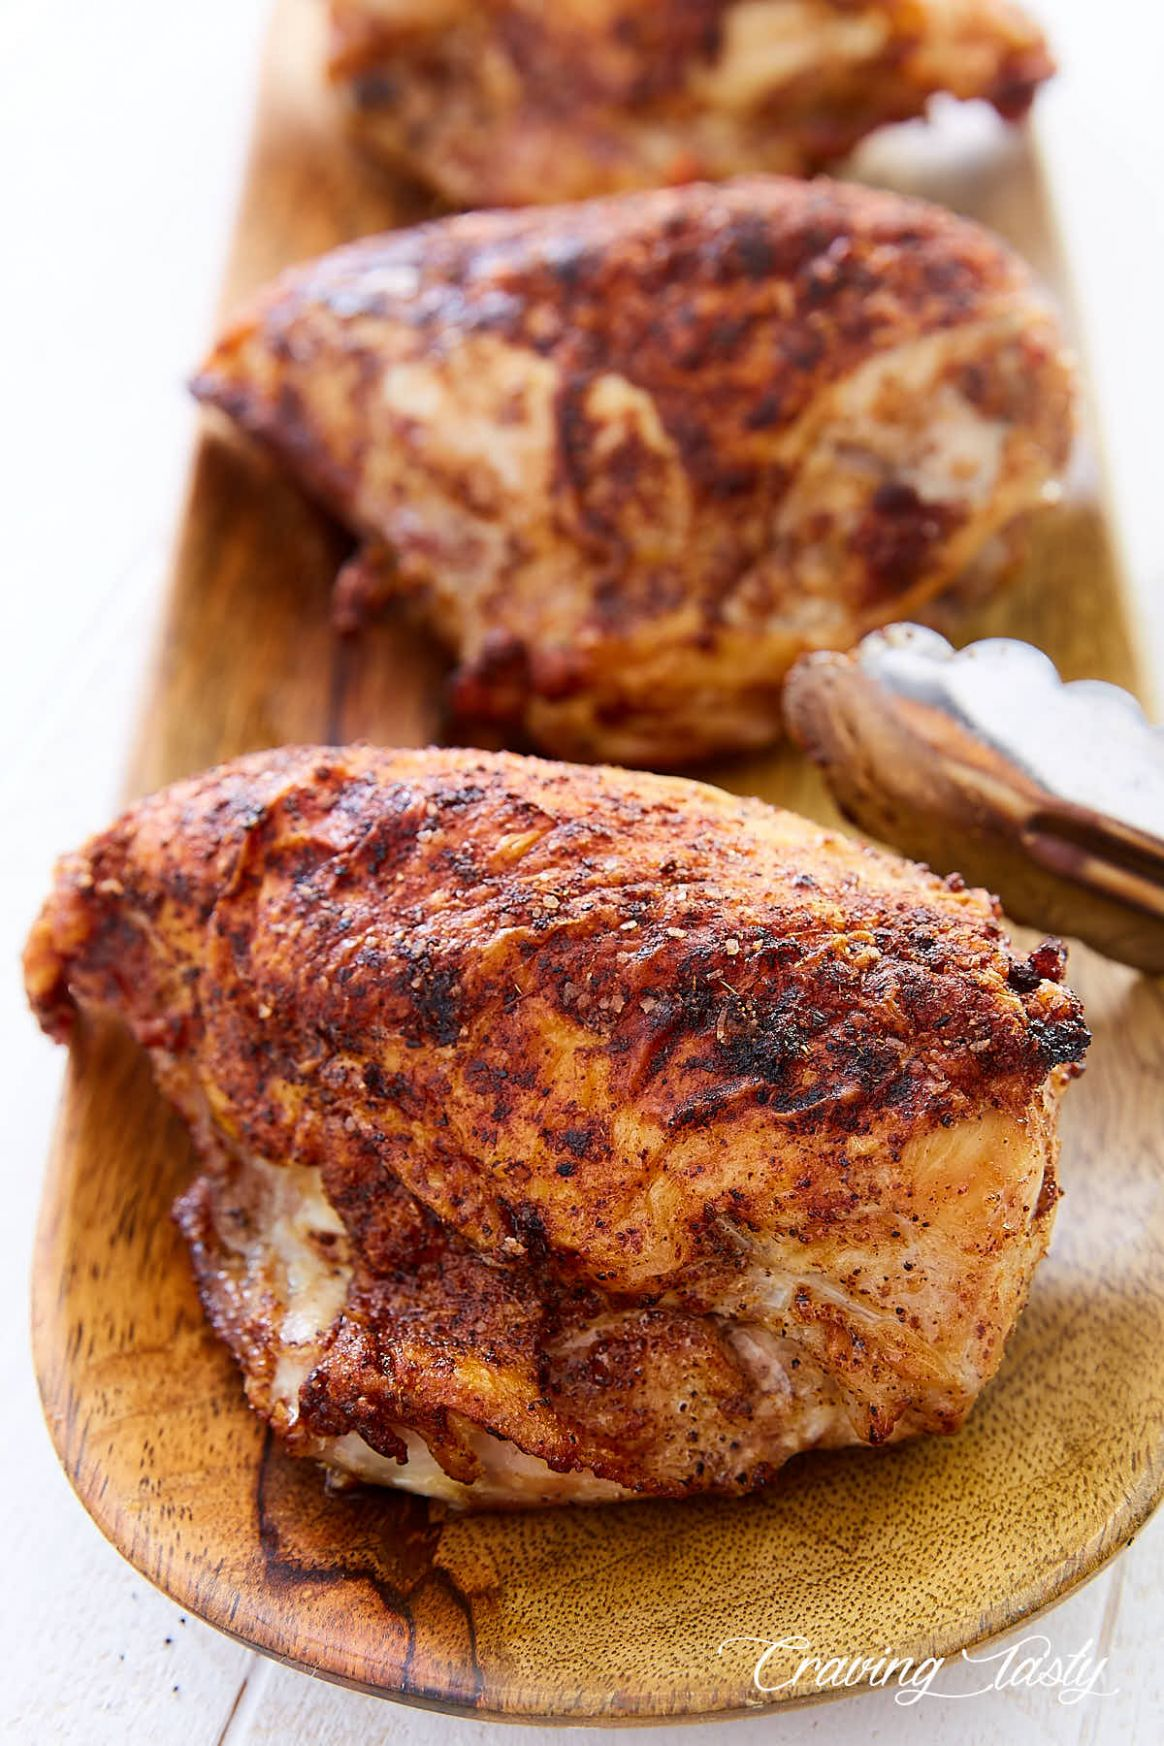 Crispy Oven Roasted Bone-In Chicken Breast - Recipes Chicken Breast With Skin On